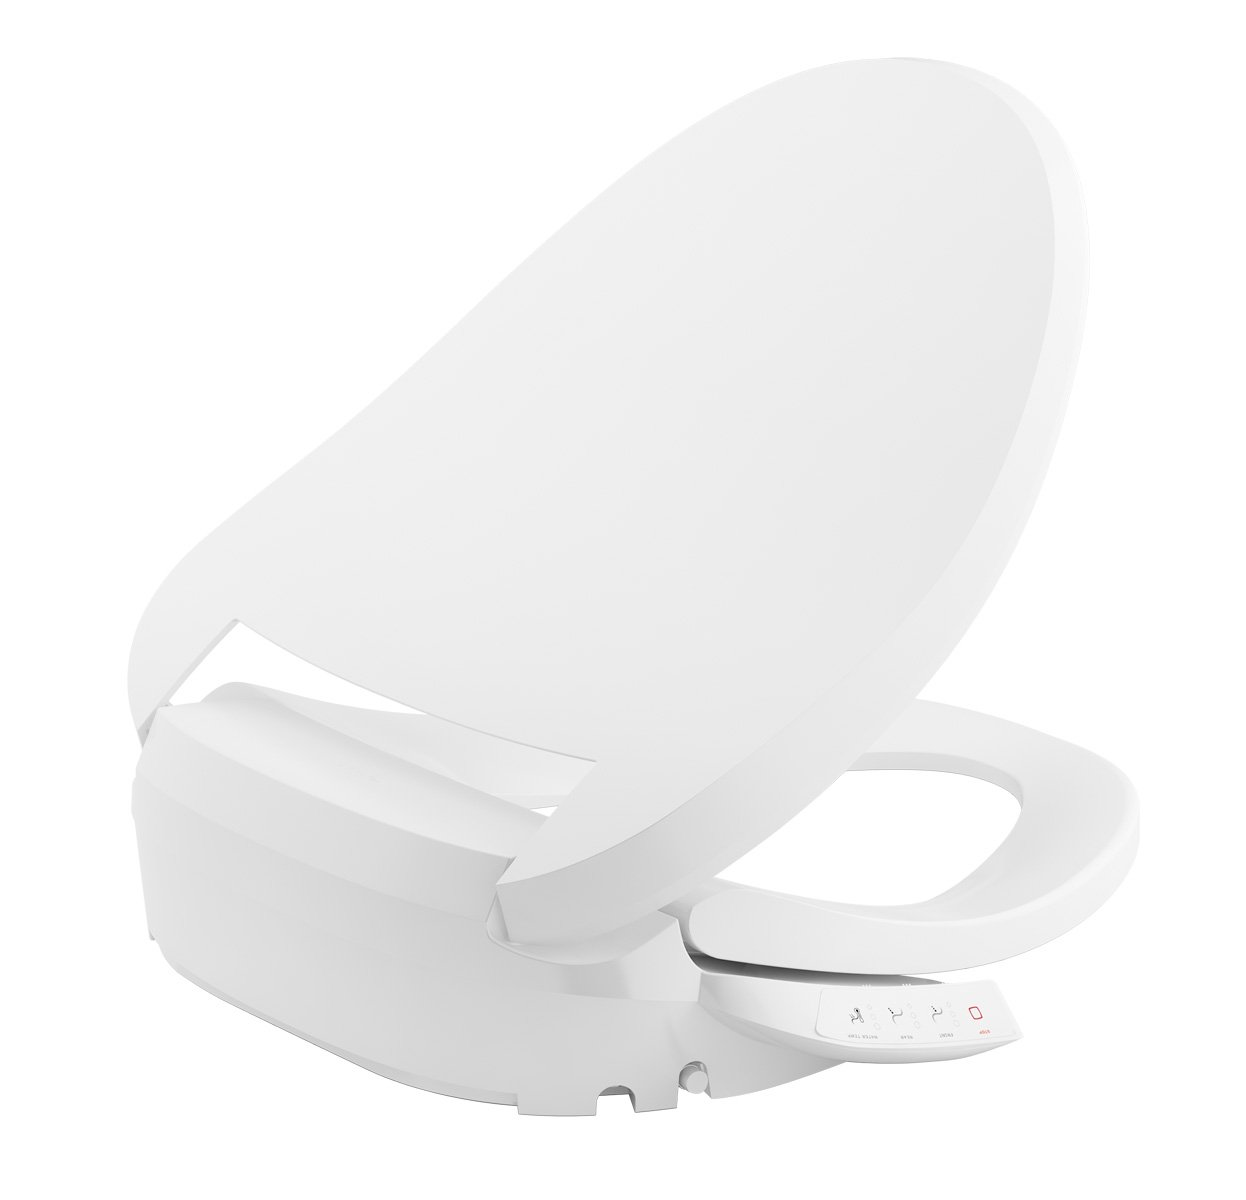 KOHLER K-18751-0 C3 050 Elongated Warm Water Bidet Toilet Seat, White with Quiet-Close Lid and Seat, Low Profile Design, Self-Cleaning Wand, Adjustable Spray Pressure and Position, Comfortable Clean